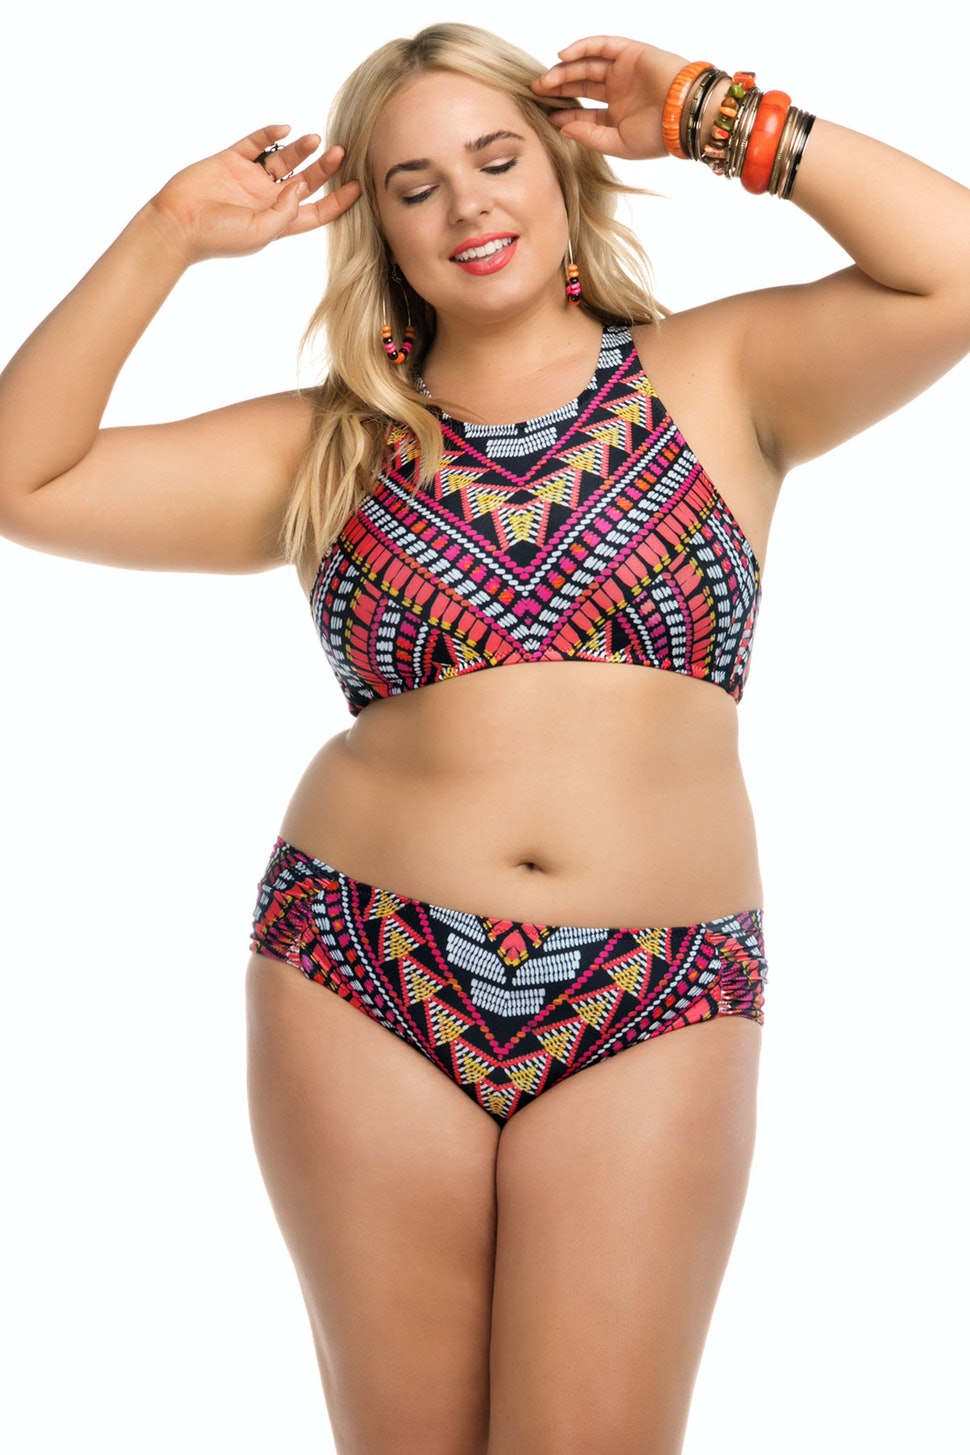 15 swimsuit styles for plus size women with small boobs